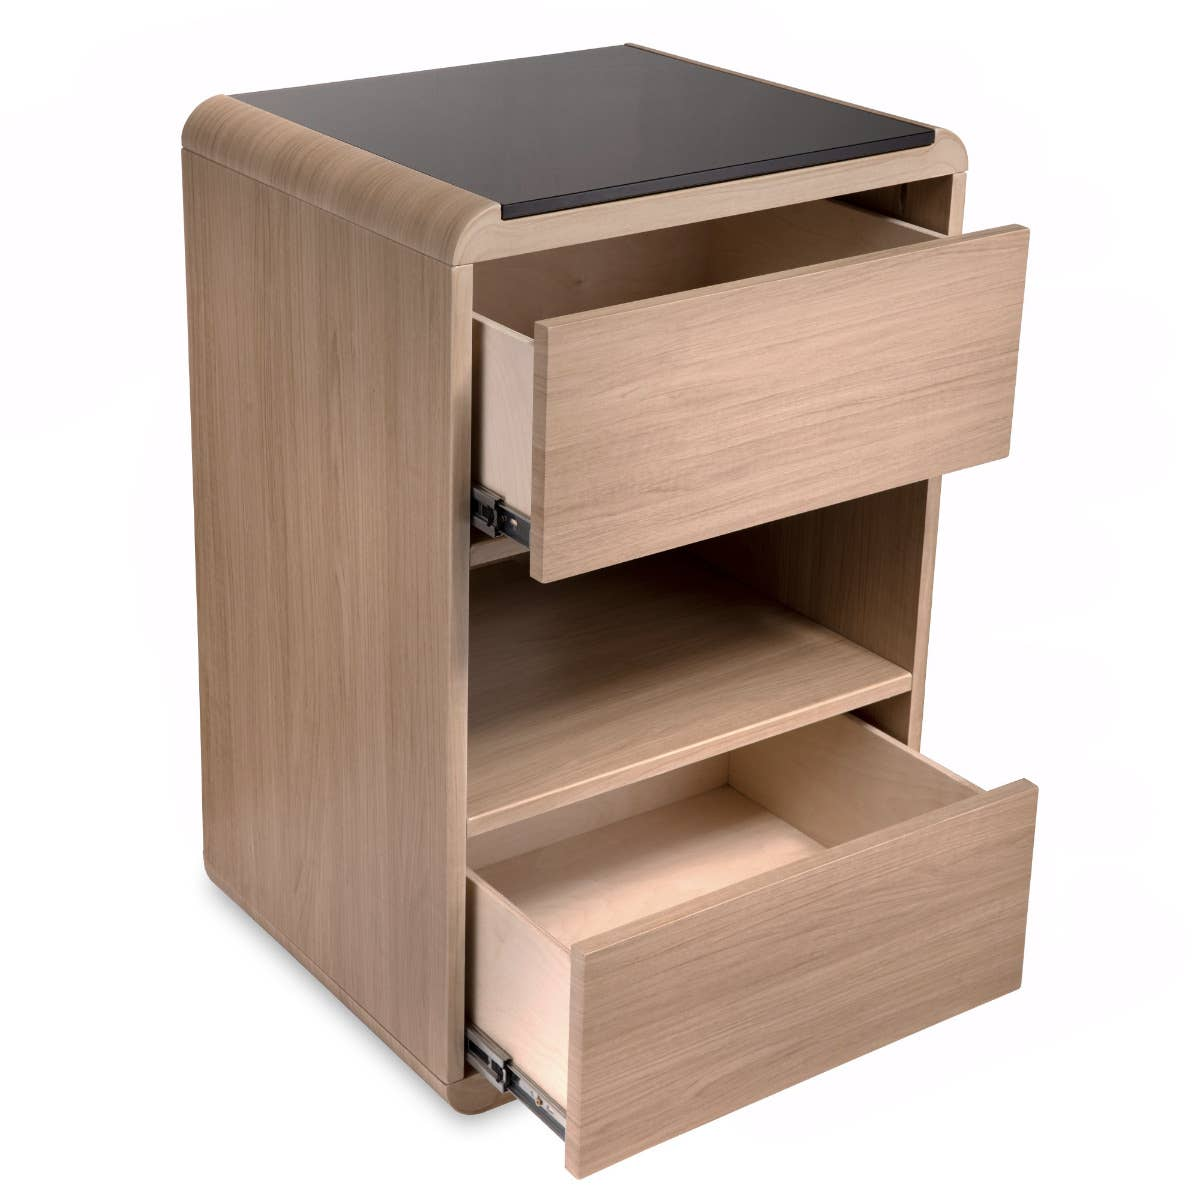 supplies-accessories_trolleys-stools_parker-trolley_02